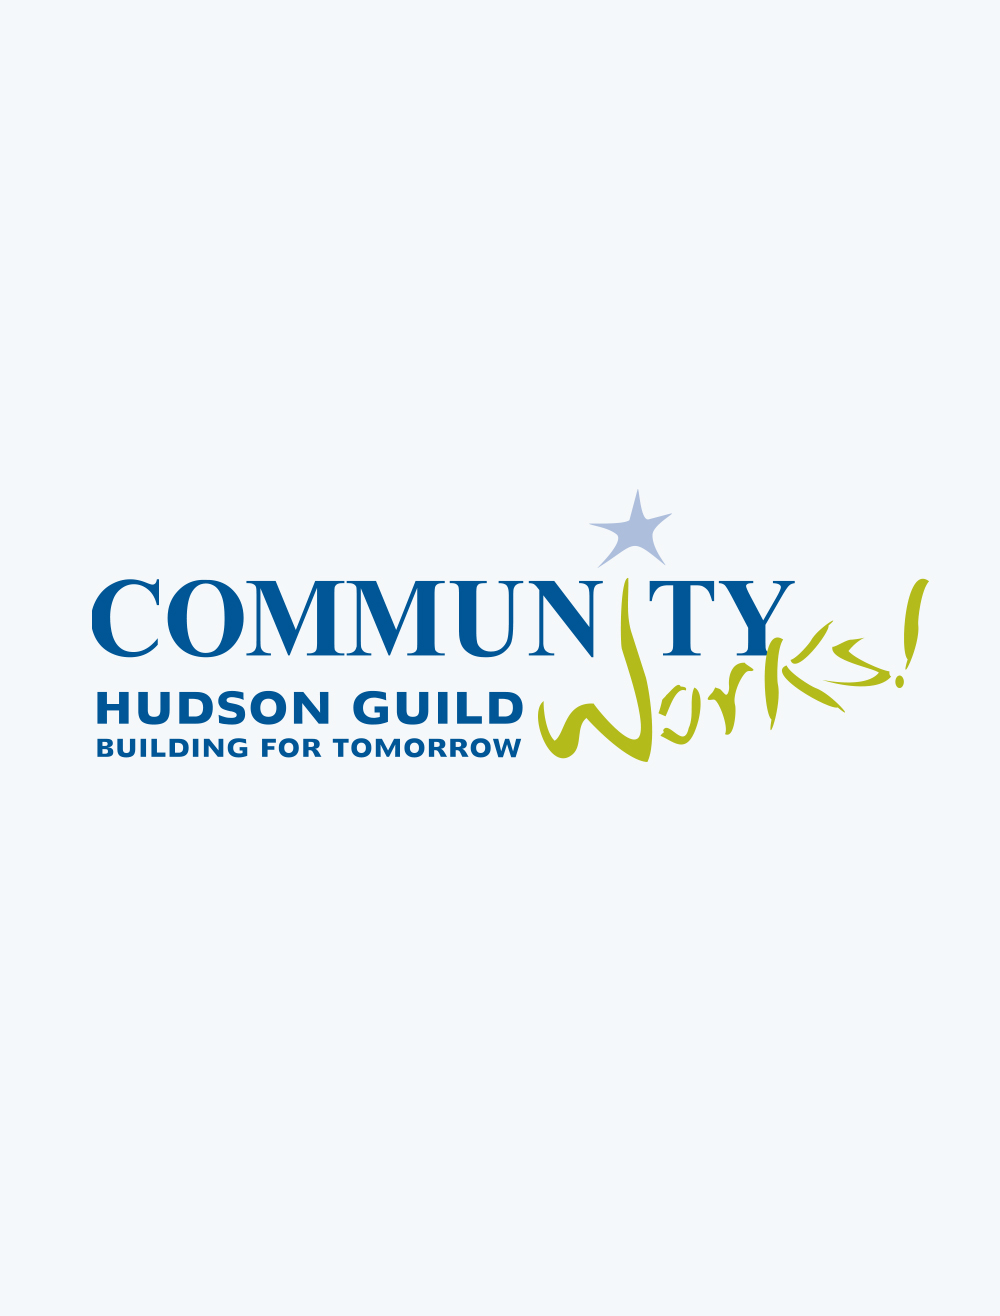 hudson-guild-capital-campaign-identity